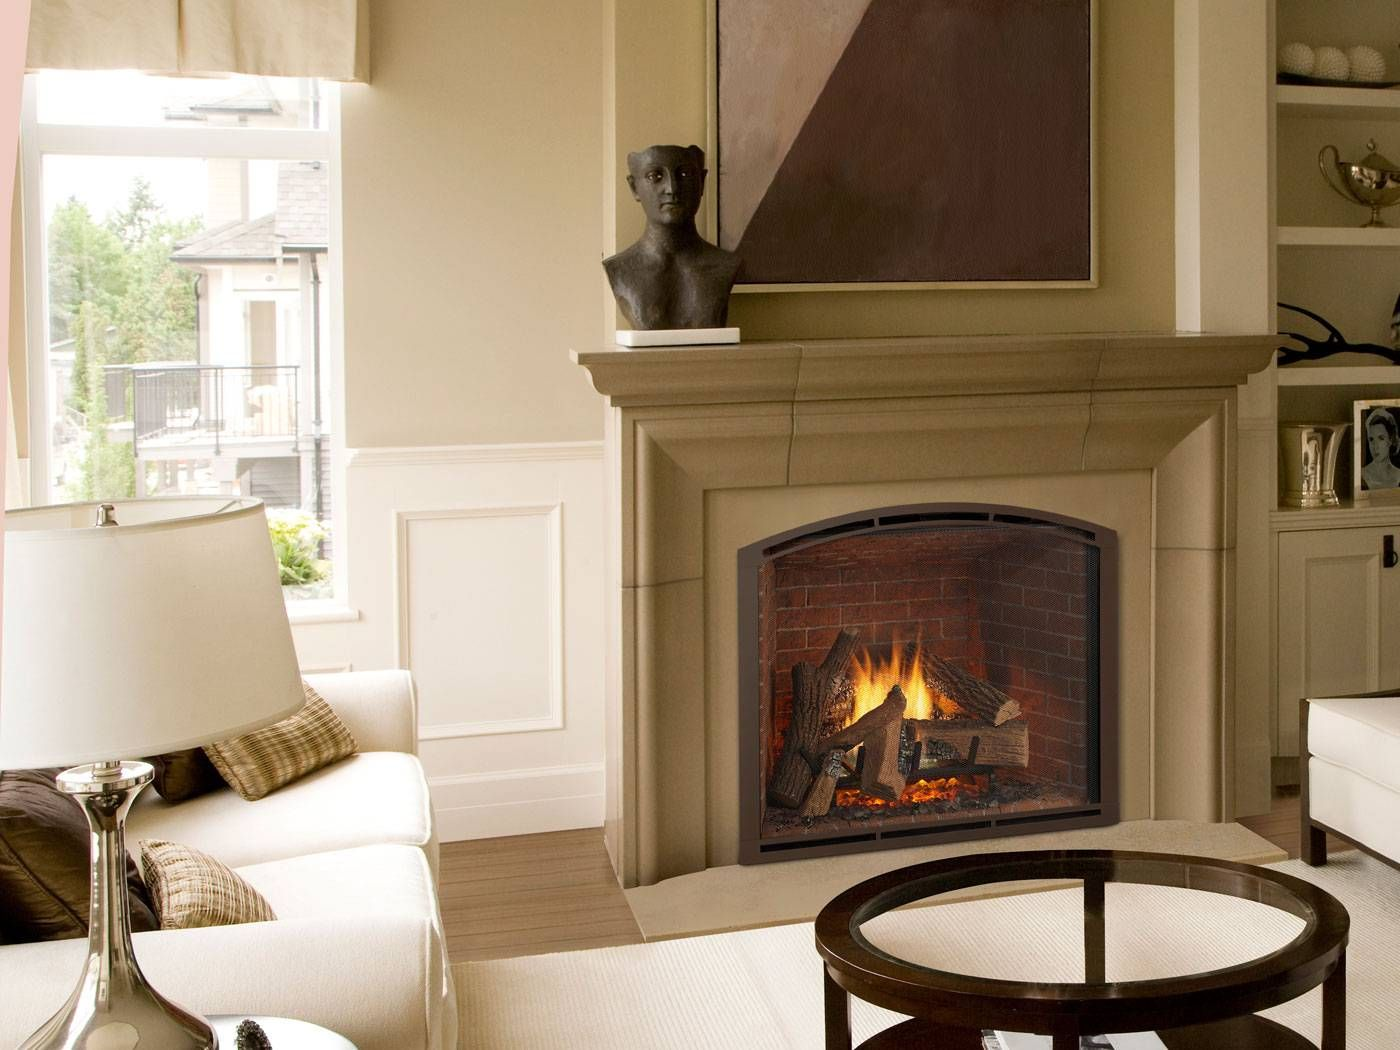 True Series Gas Fireplaces Indoor Gas Fireplace Fireside Hearth And Home Gas Fireplace